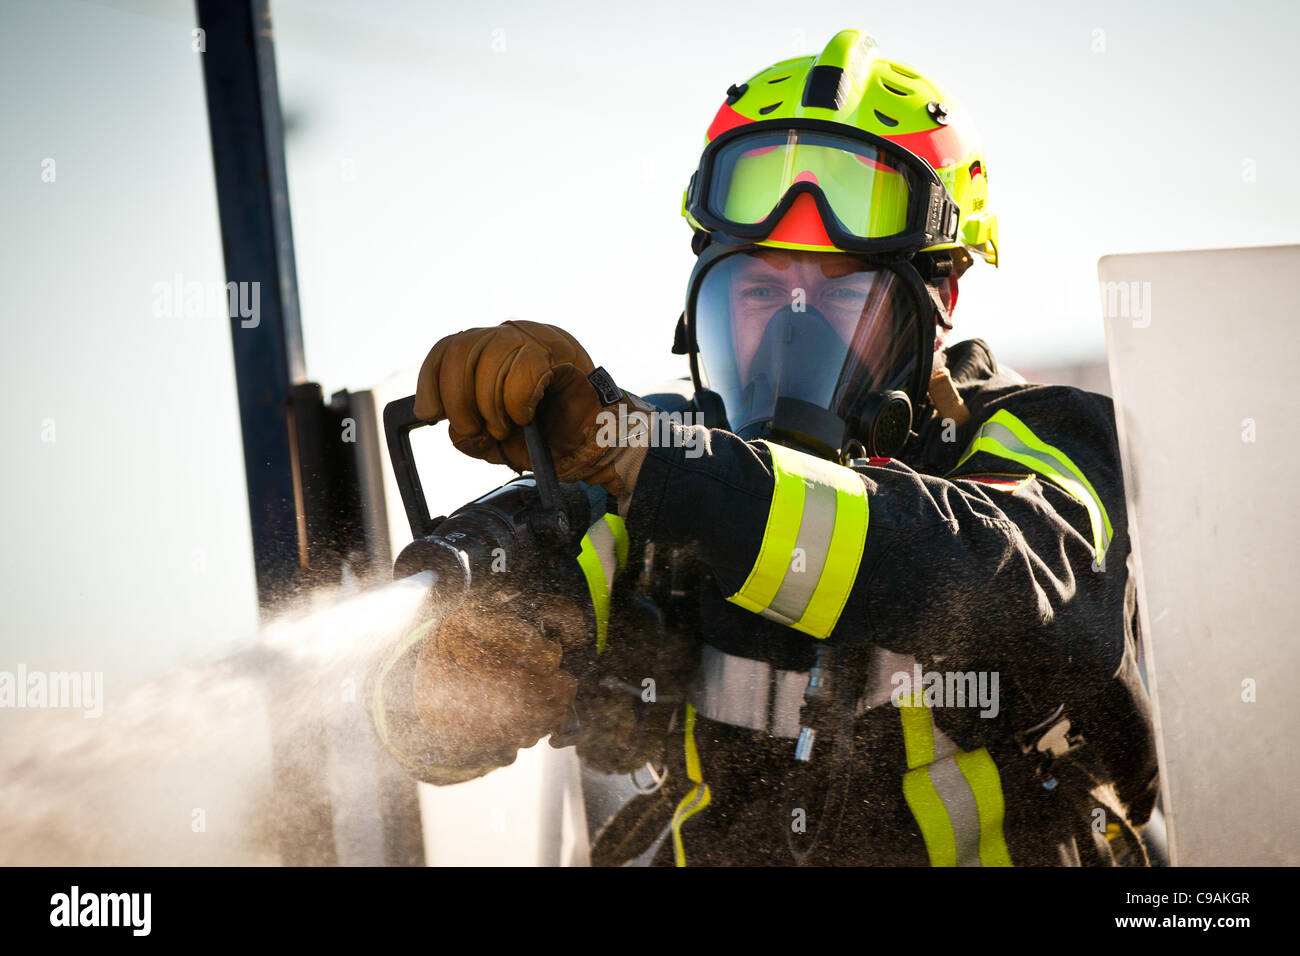 A firefighter aims a firehose at a target while wearing full firefighting gear and working against the clock during - Stock Image